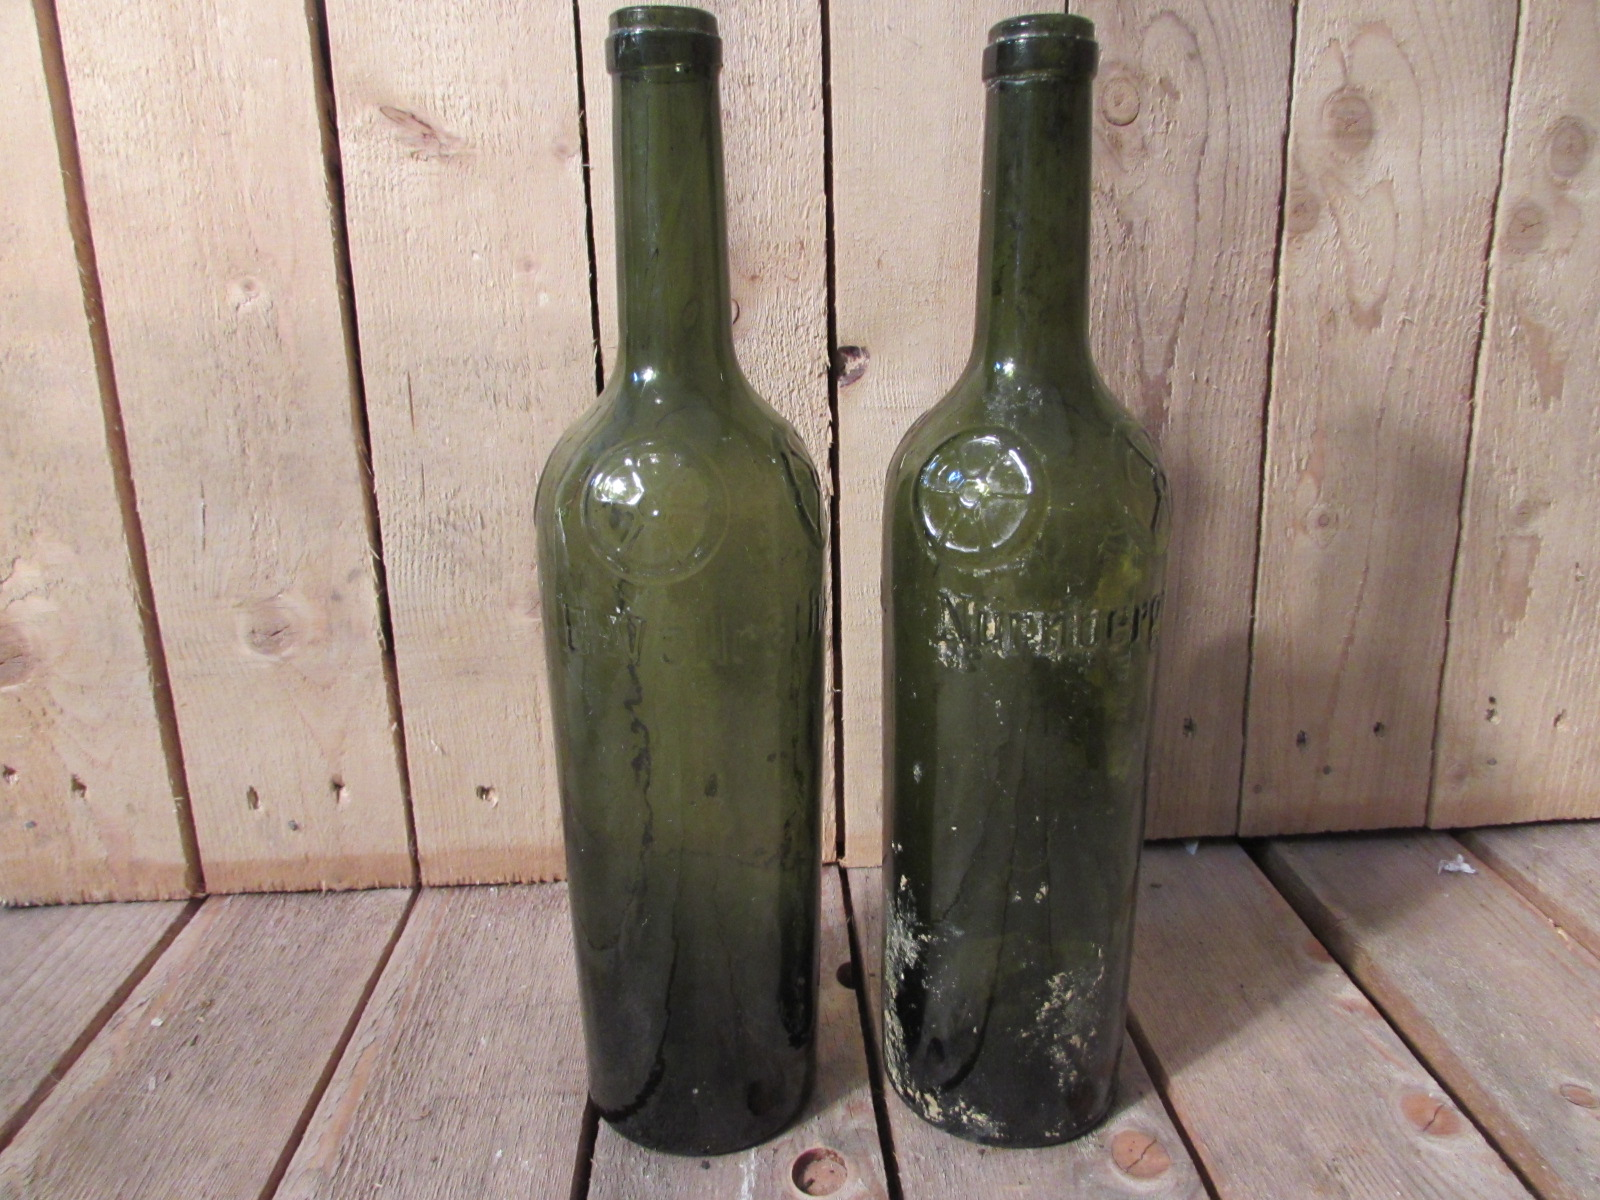 2x wine bottles found at dig near Somme Battlefield WW1